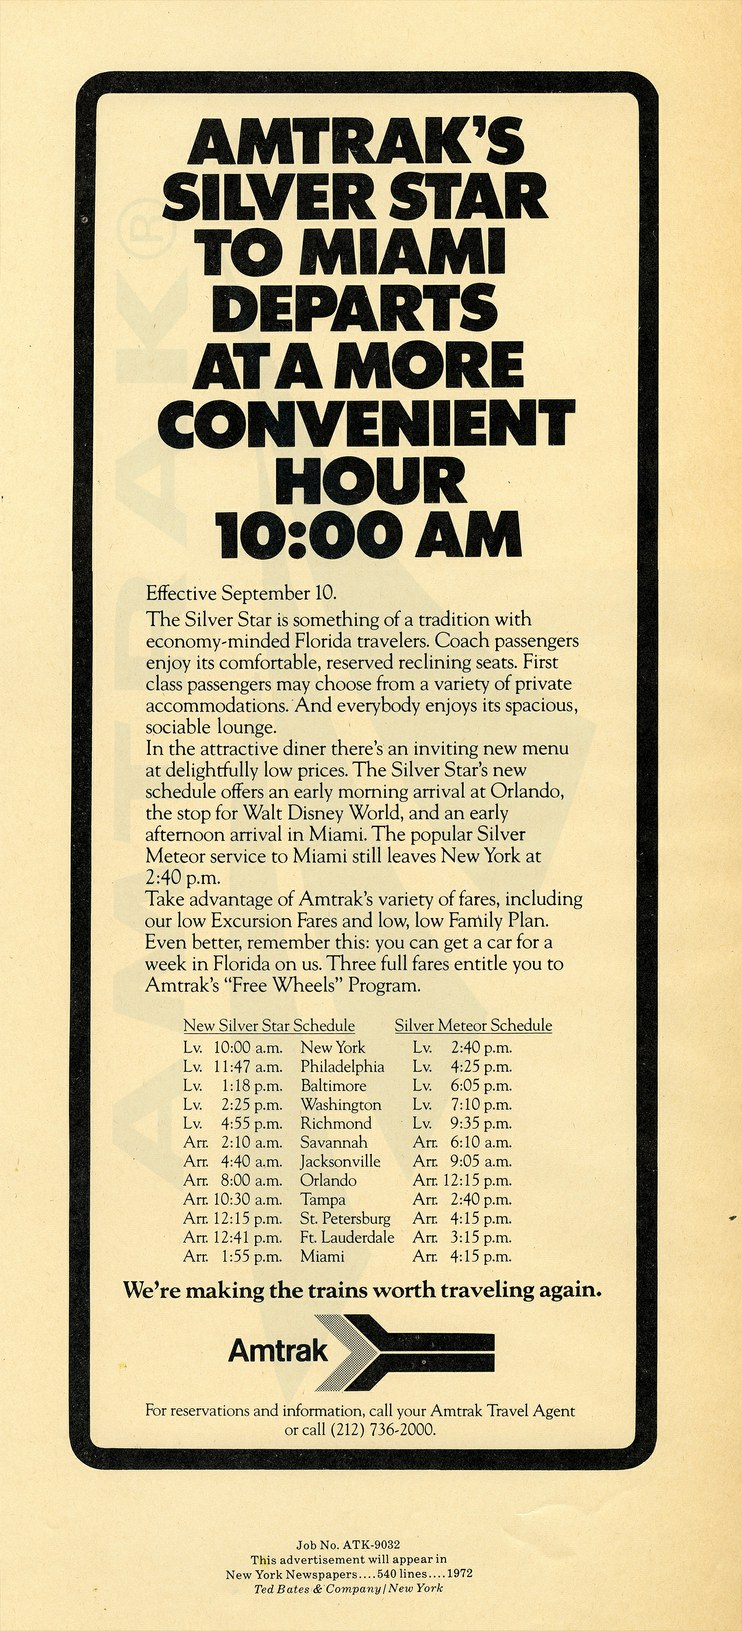 """<i>Silver Star</i>...More Convenient Hour"" advertisement, 1972."